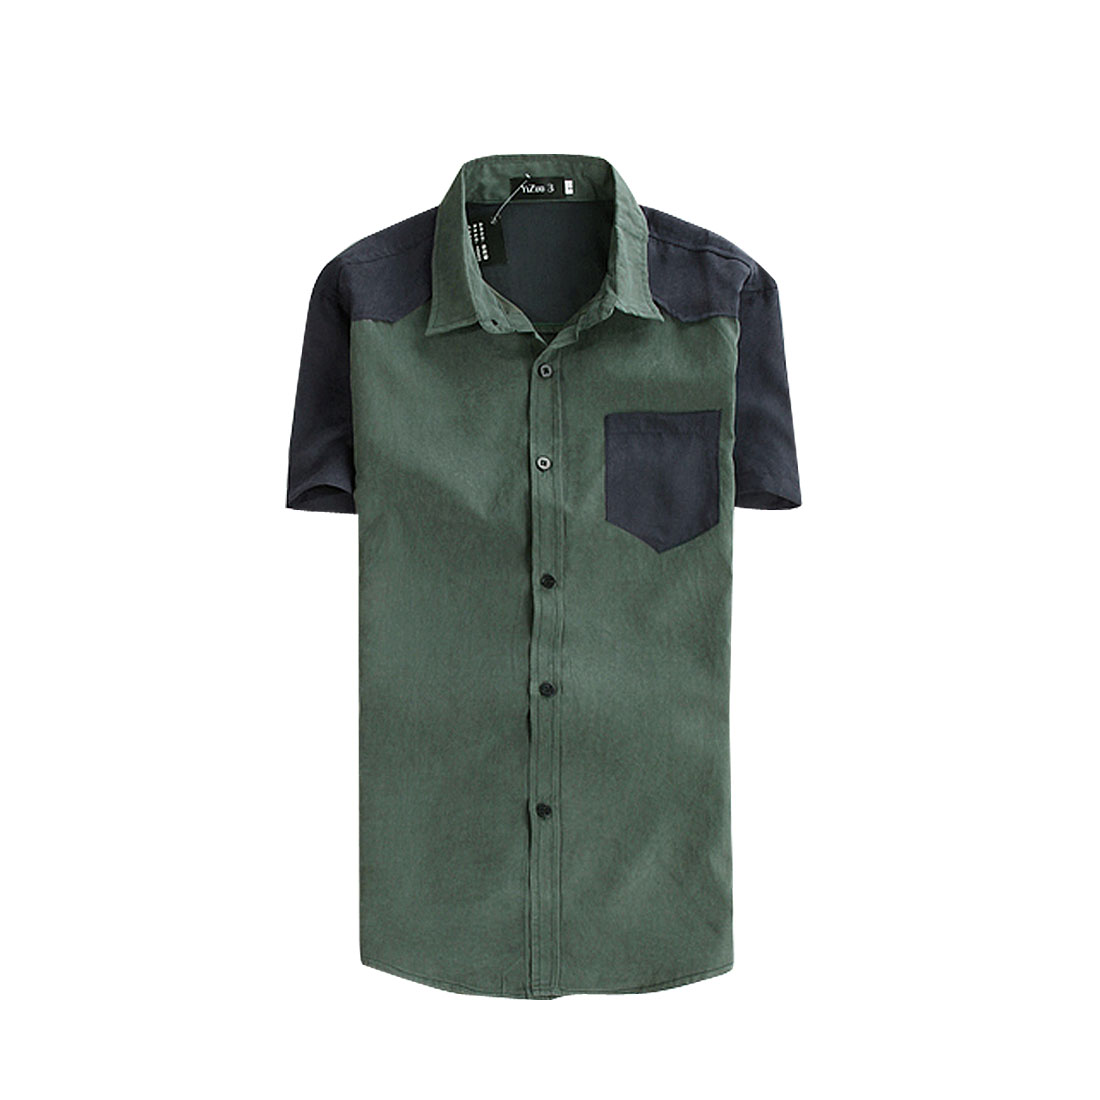 NEW Fashion Mens Slim Fitted Short Sleeve Casual Shirt Tops Army Green S